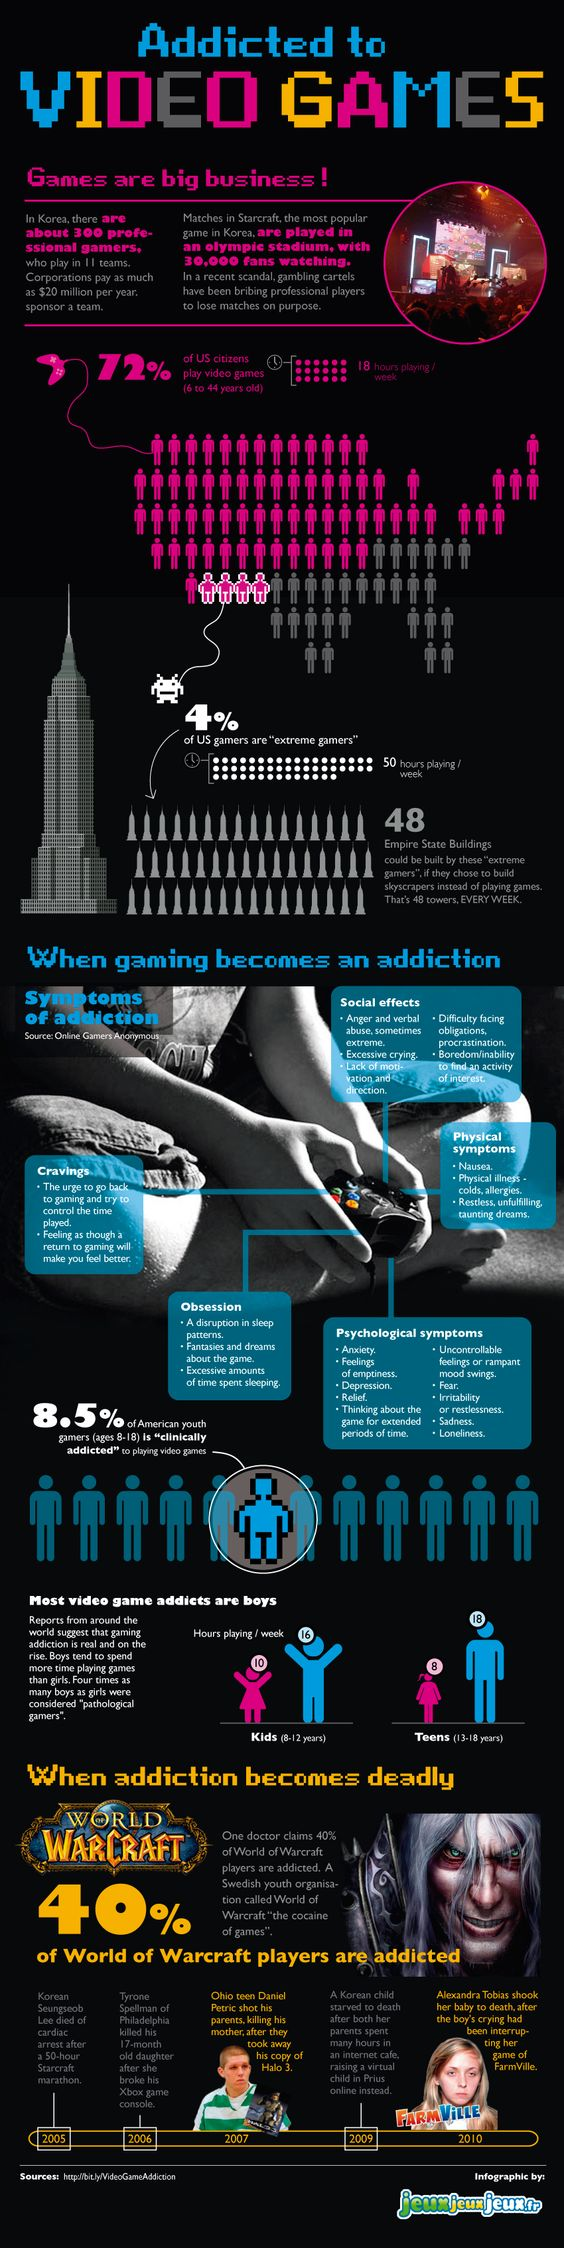 Video game addiction by Toca dos Jogos | Visit our new infographic gallery at visualoop.com/